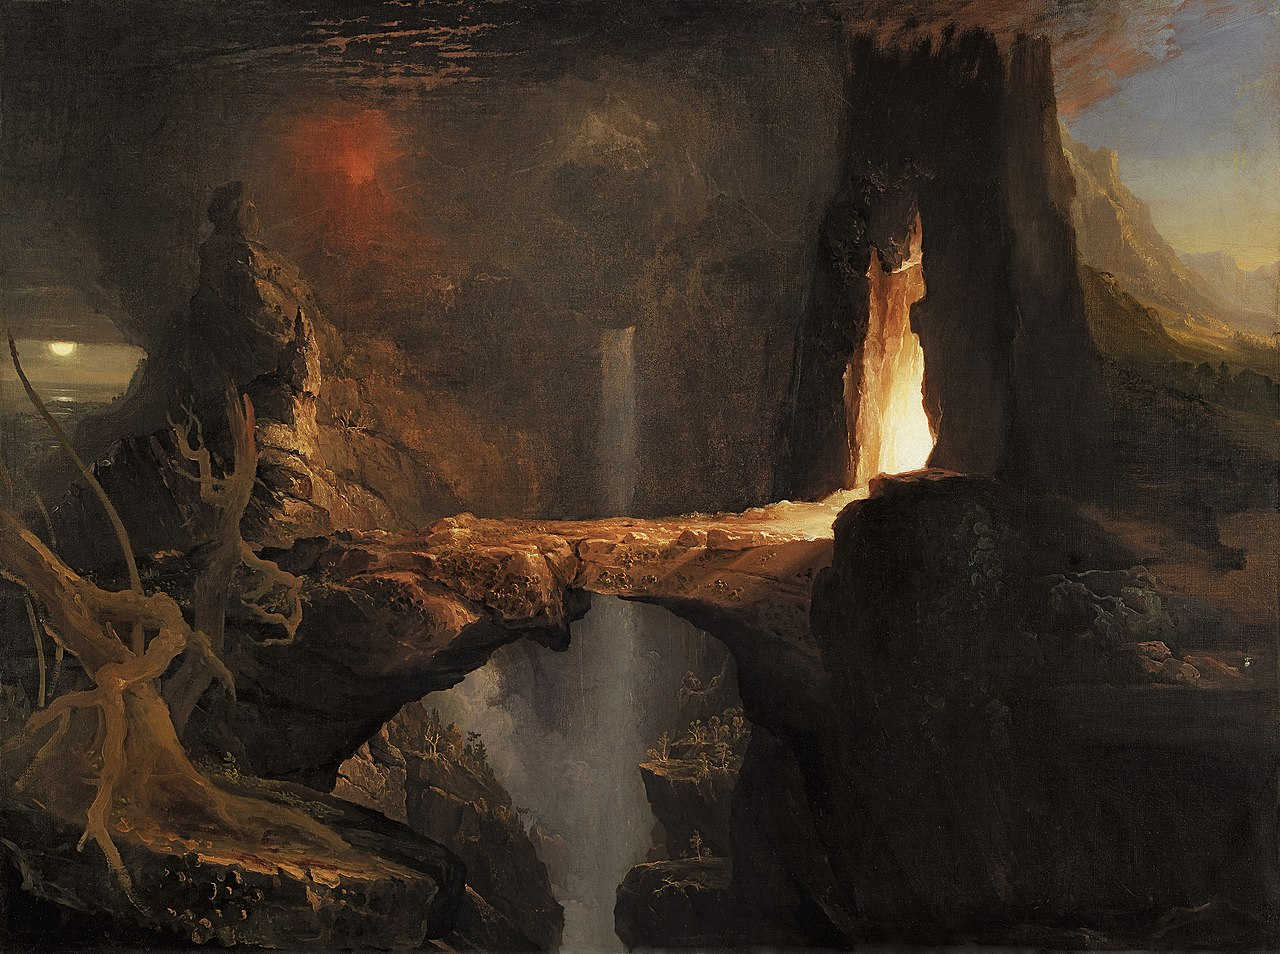 Expulsion – Moon and Firelight, 1828, by Thomas Cole. {{PD-US}}